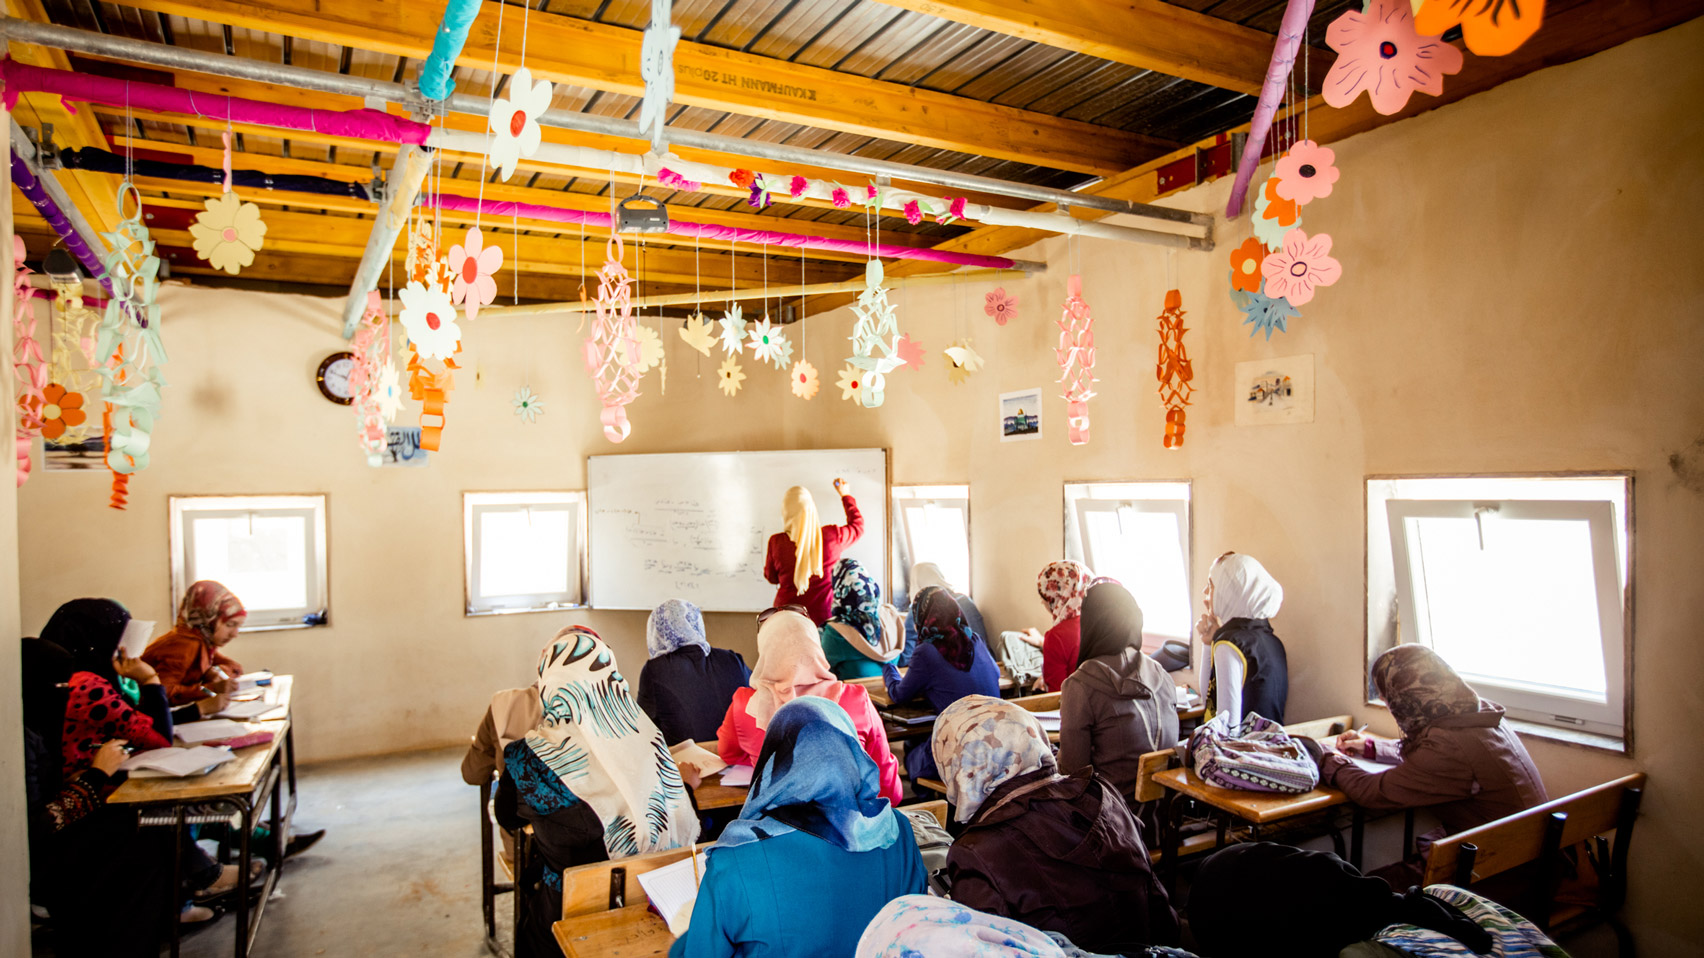 Low Cost School For 3000 Children Planned At Syrian Refugee Camp In Jordan